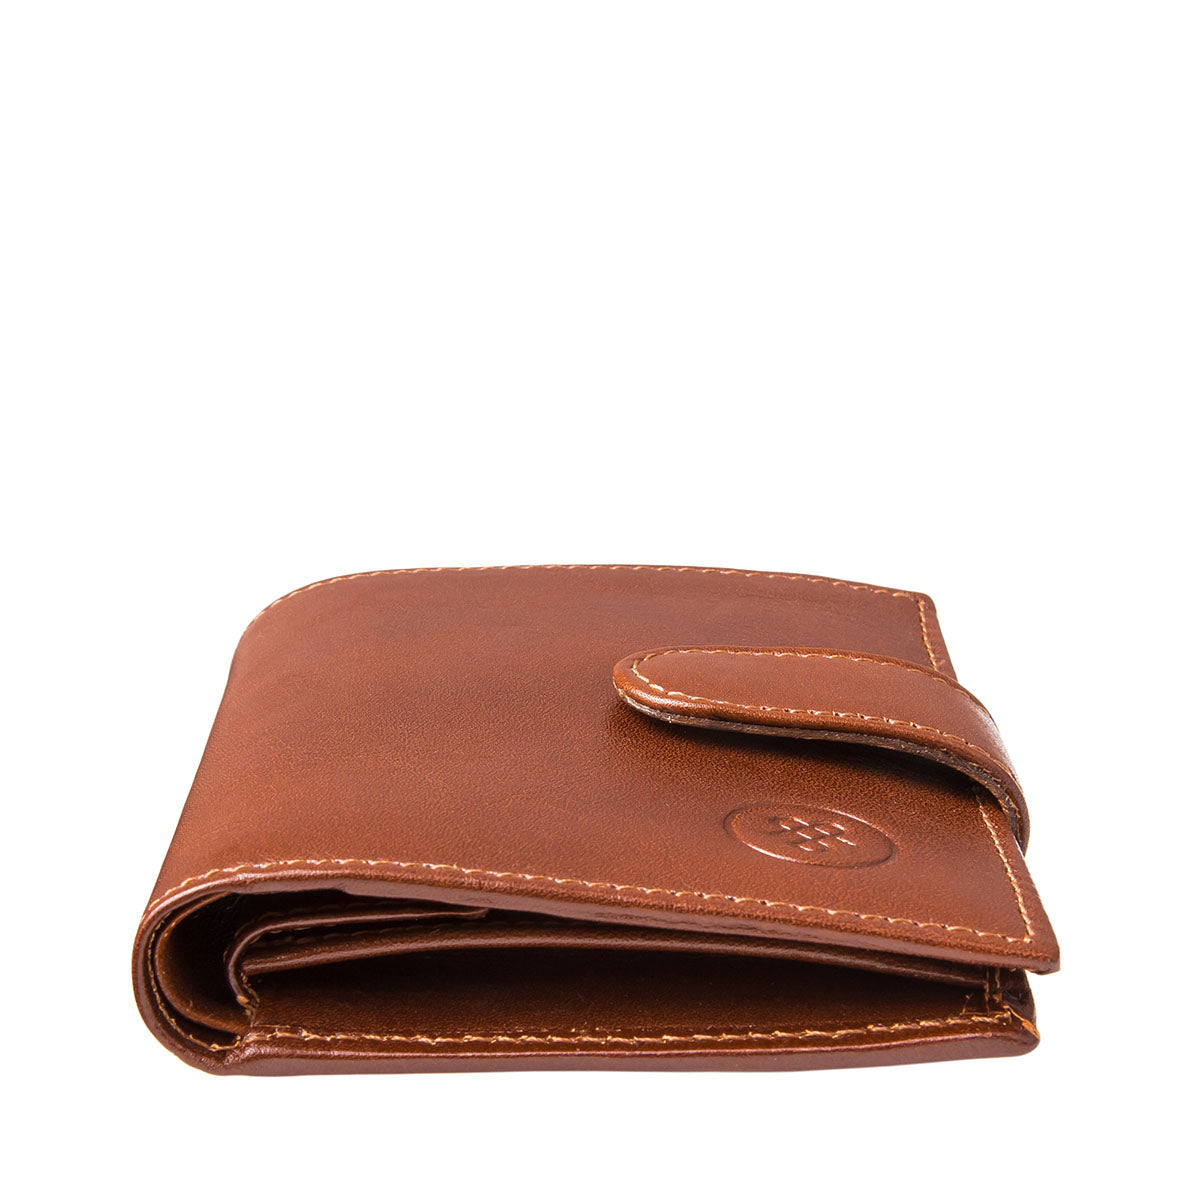 Image 6 of the 'Pietre' Chestnut Veg-Tanned Leather Compact Wallet